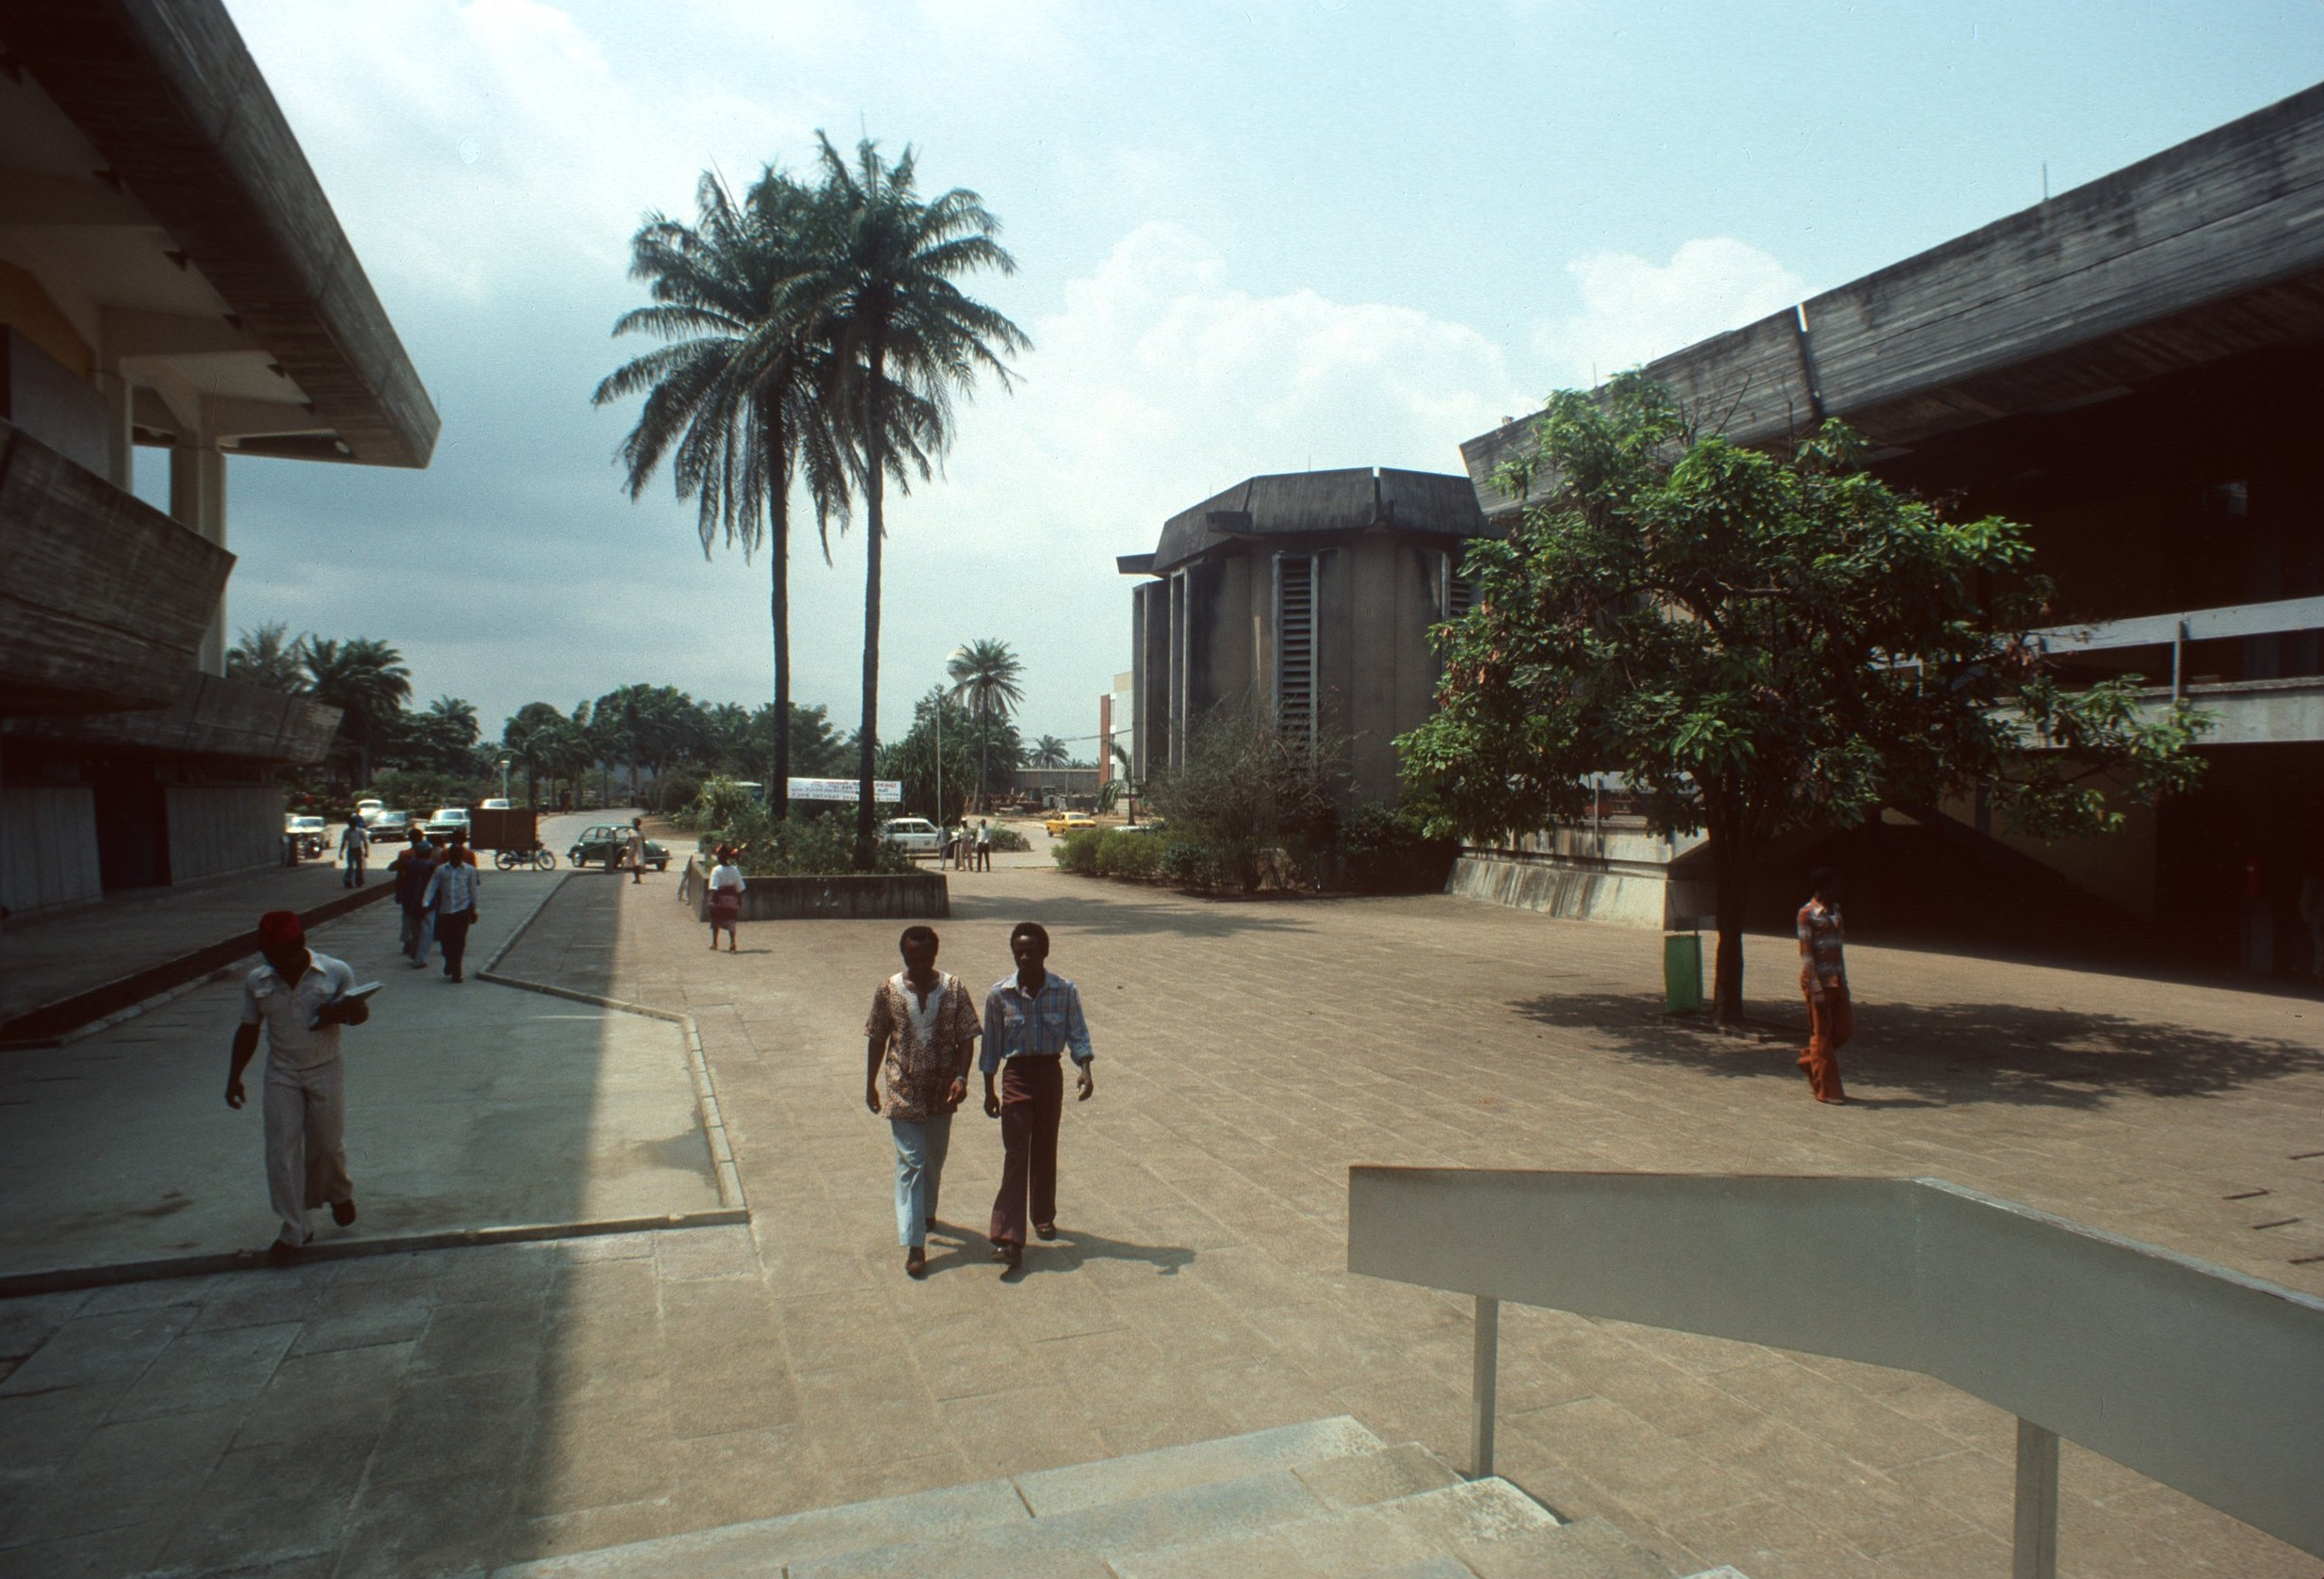 On the campus of the University of Lagos.